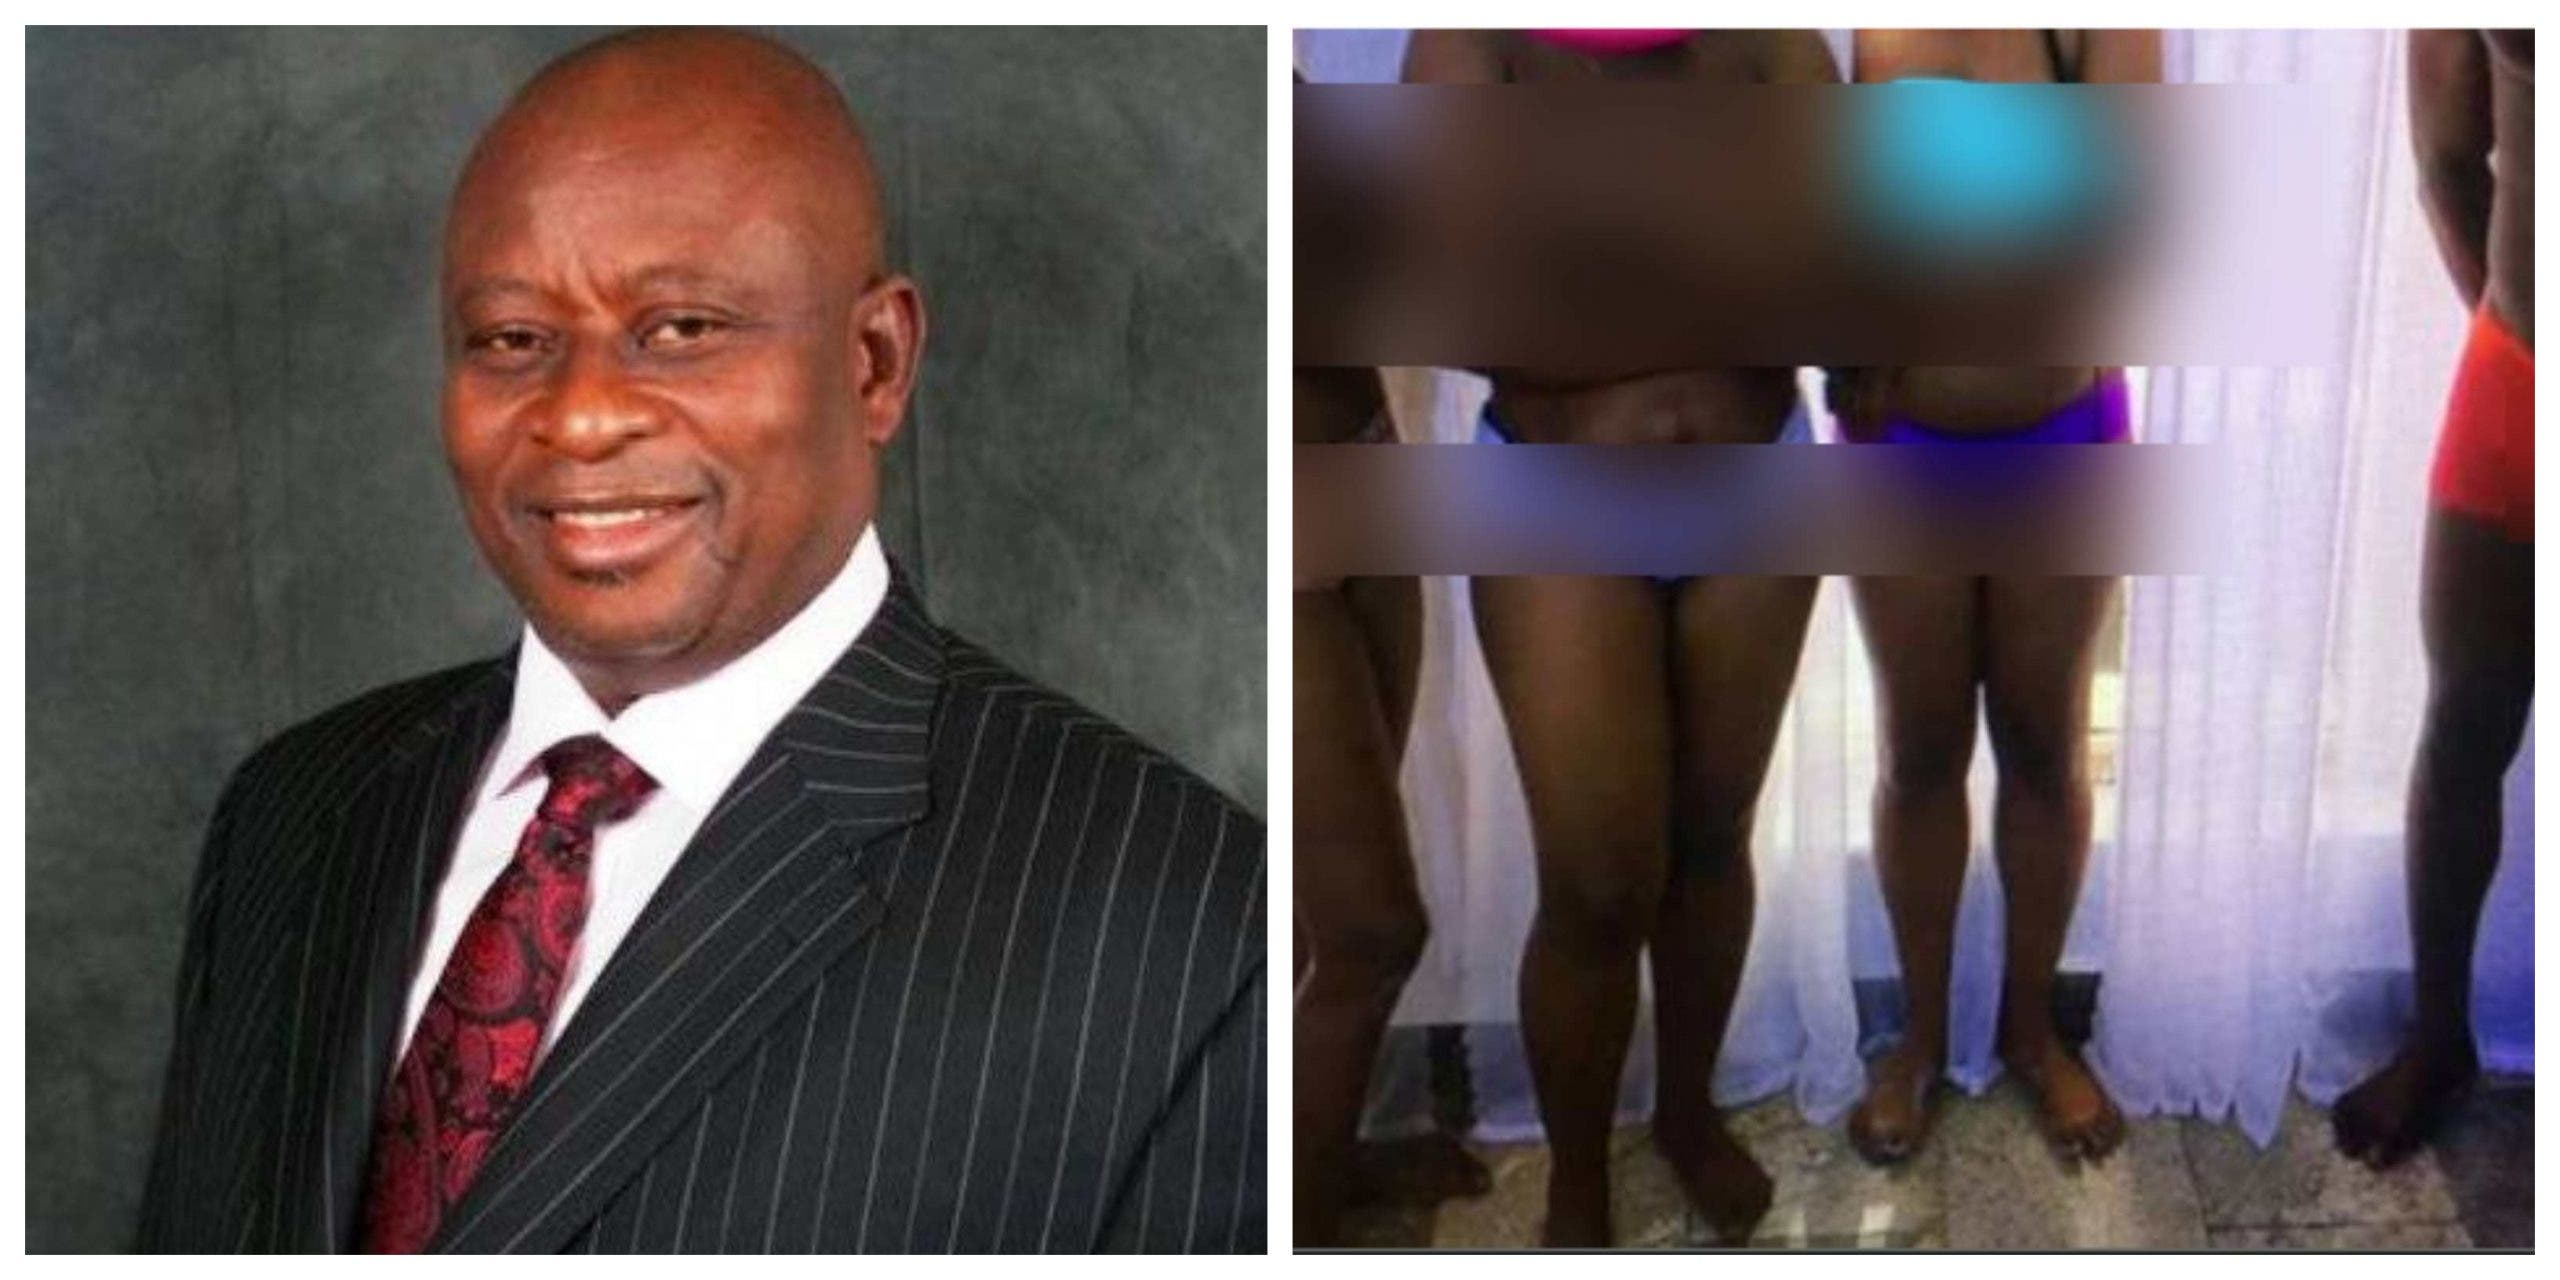 ZAMBIA: Ministers Naked Video Leaks - Welcome